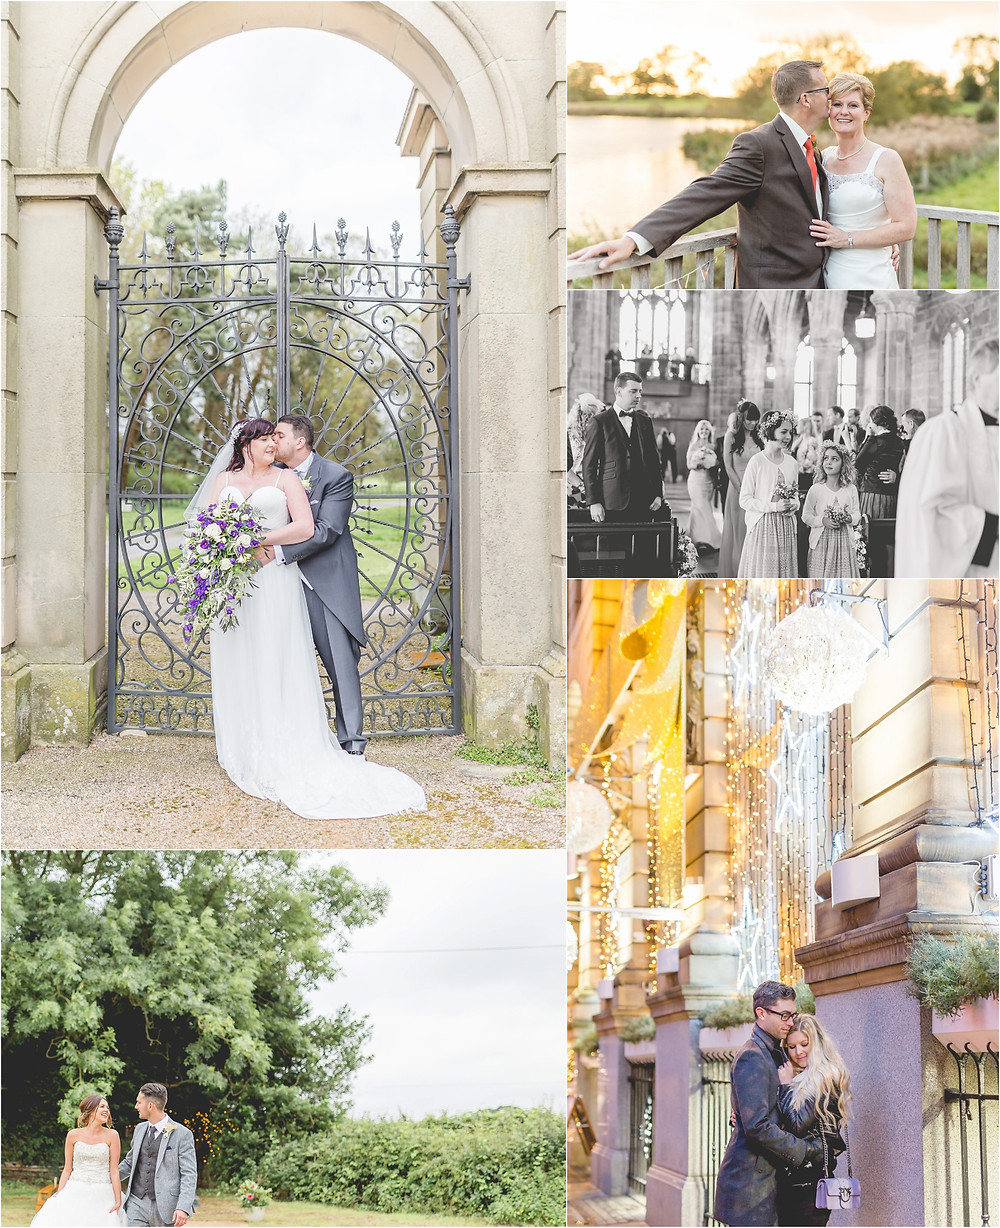 Best of 2017 Cheshire Wedding Photography Sarah Horton